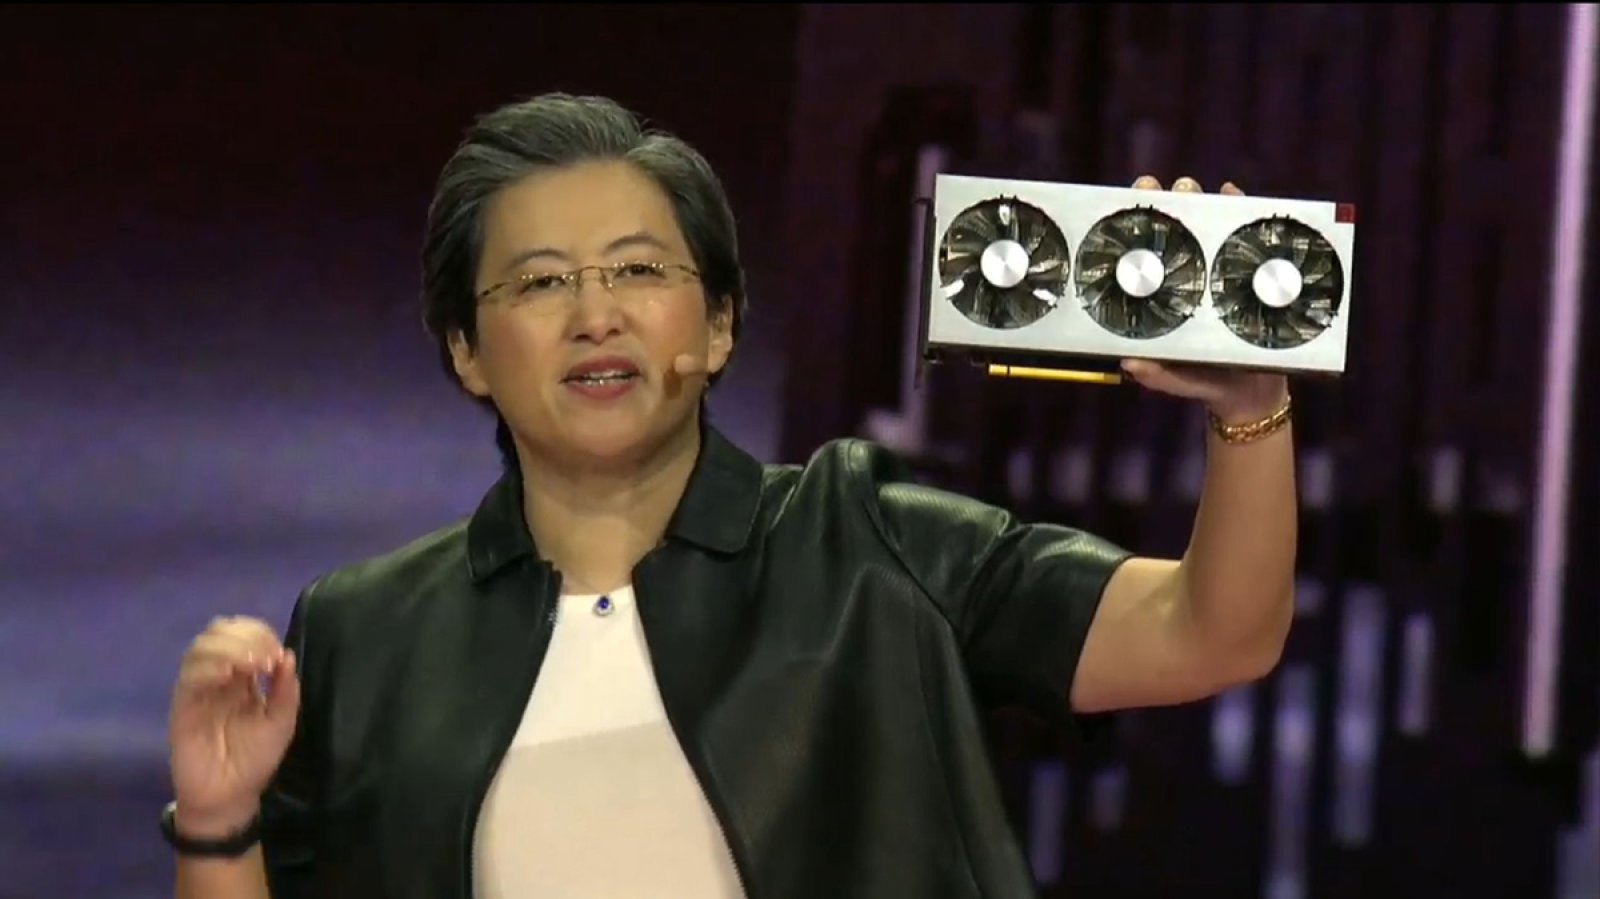 #CES | AMD introduced its new flagship graphics card and processors Ryzen 3rd generation